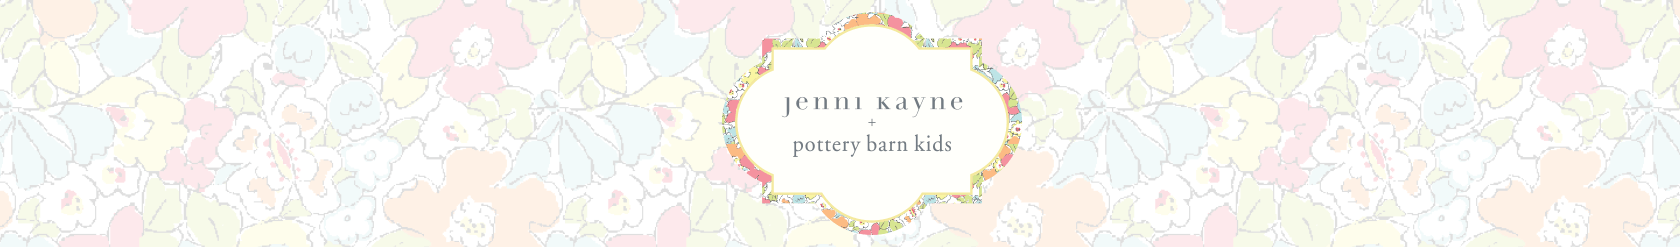 Jenni Kayne Collection at Pottery Barn Kids